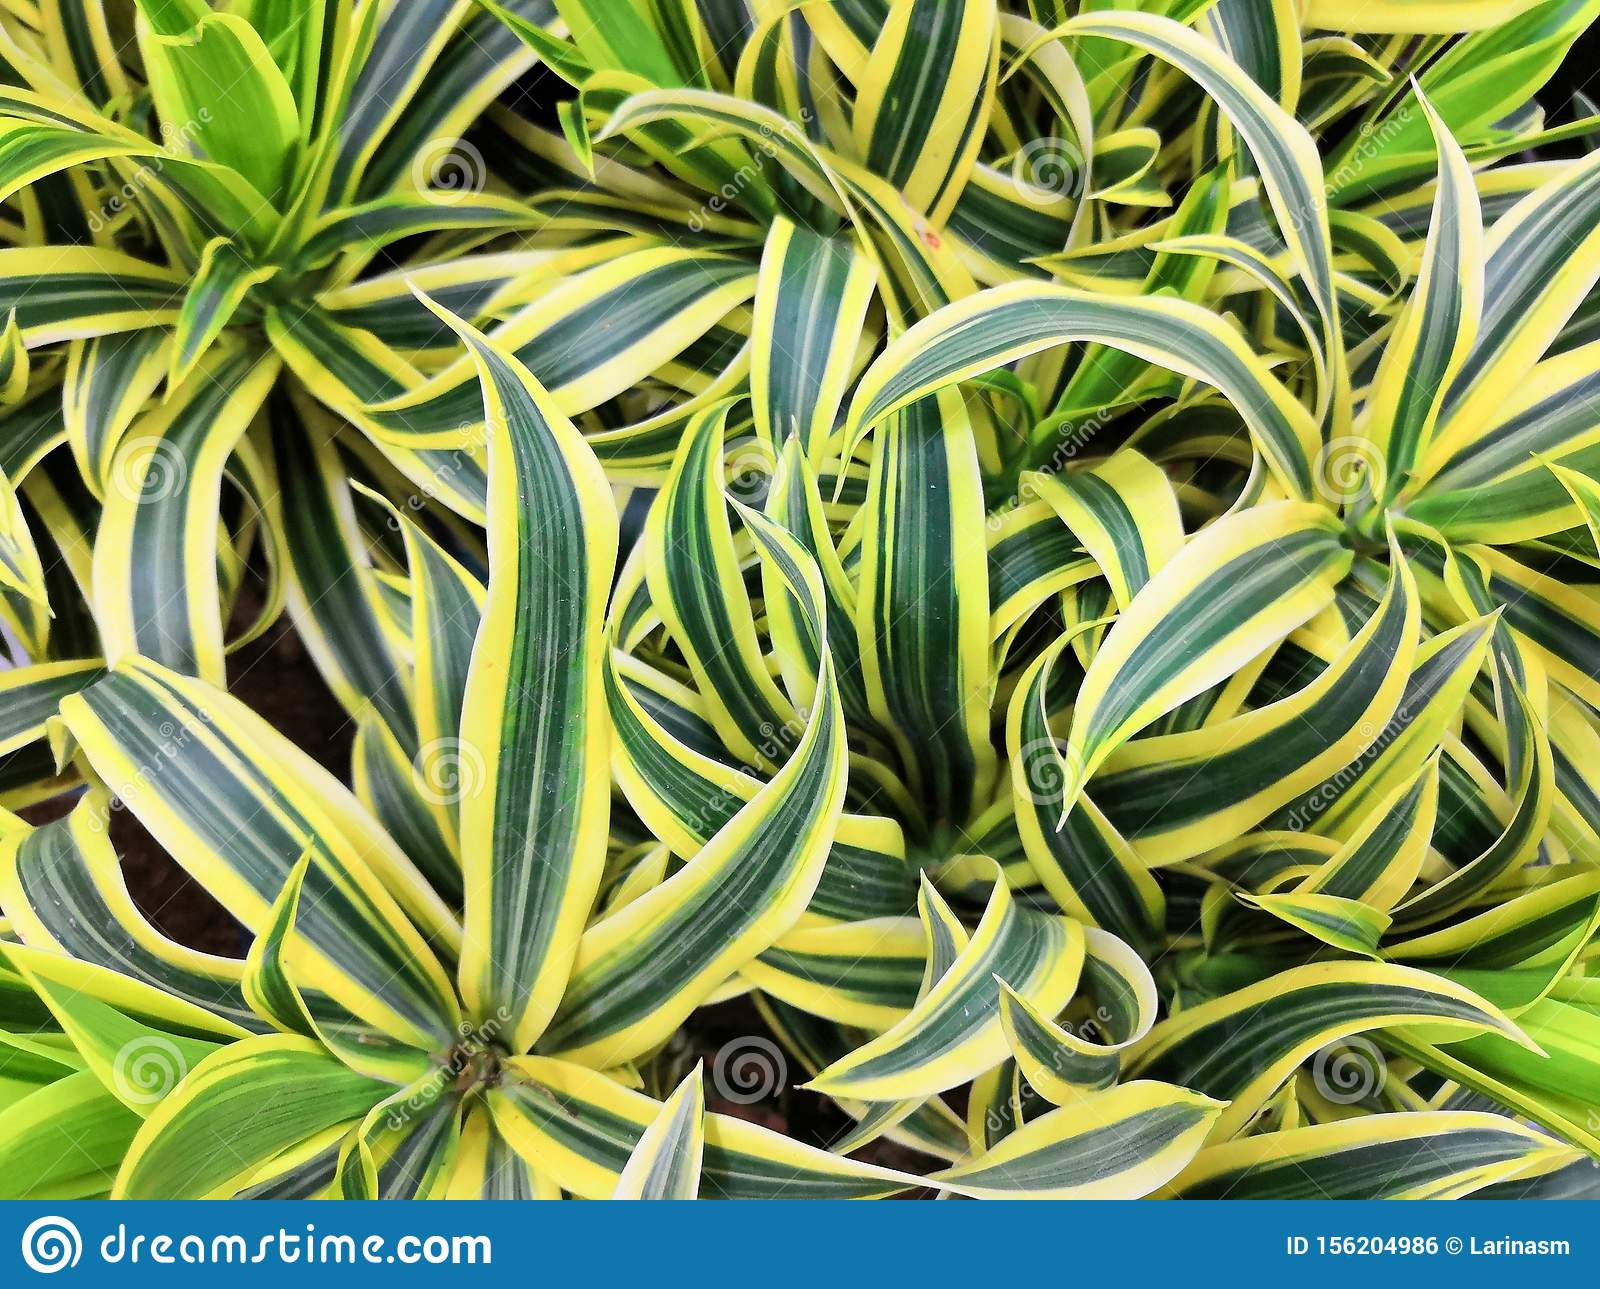 Variegated Green Yellow With White Beautiful Leaves Tropical Dracaena Plants Background Stock Photo Image Of Green Color 156204986 Yellowing leaves on your houseplants can be caused by a number of conditions. https www dreamstime com variegated green yellow white beautiful leaves tropical dracaena plants background song india plant popular image156204986